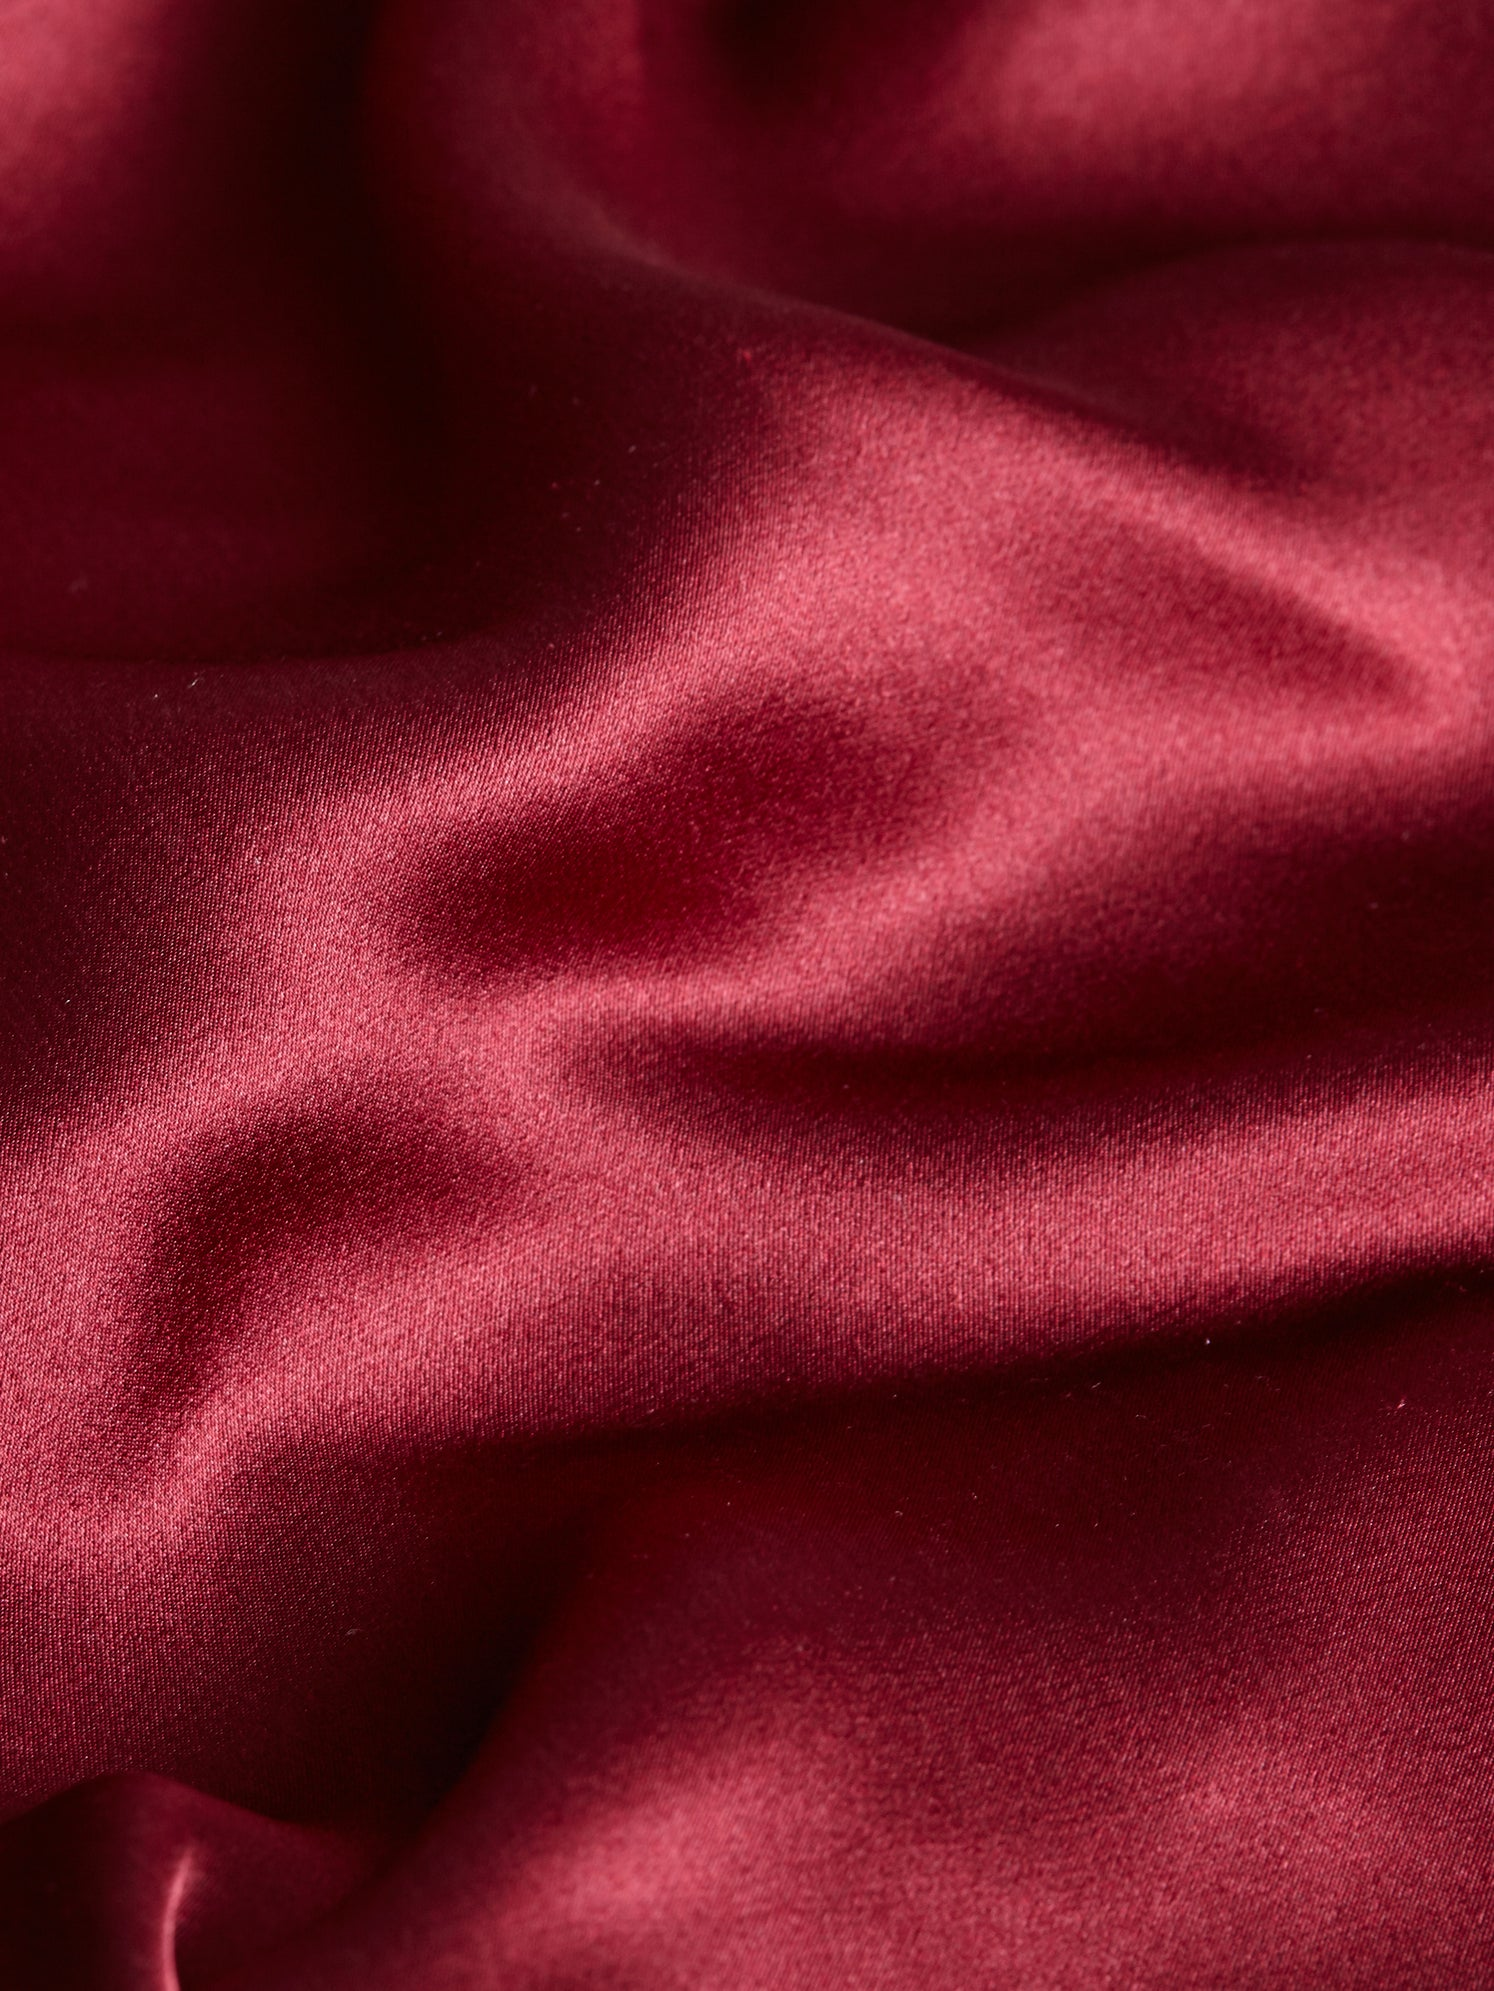 Burgundy silk fabric